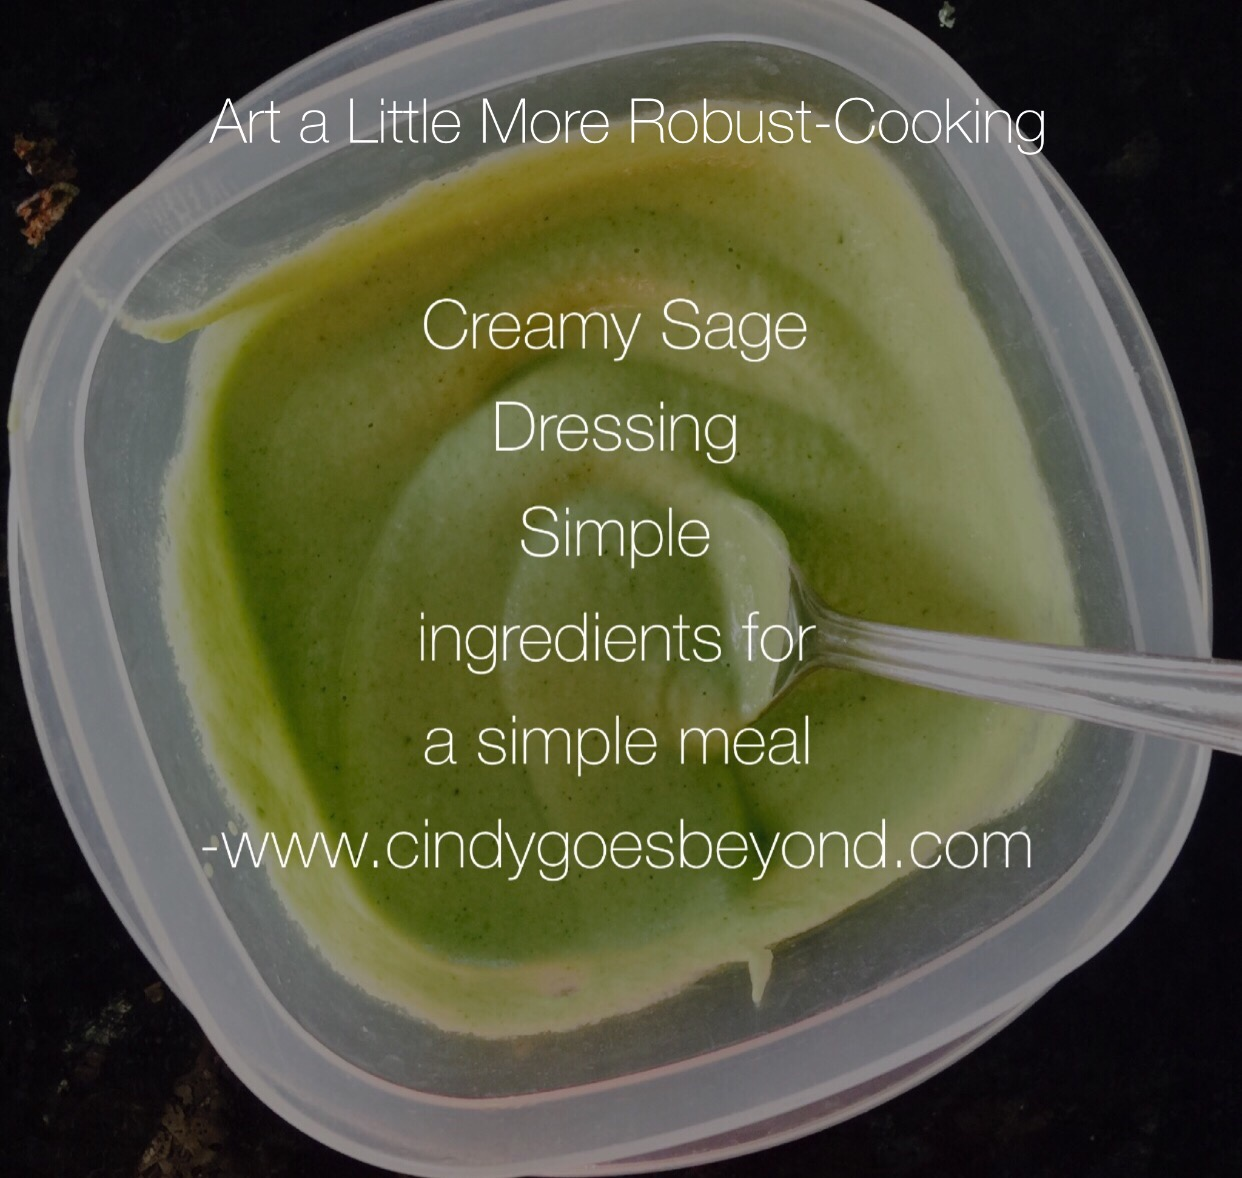 Anthony williams medical medium bad reviews - Creamy Sage Dressing